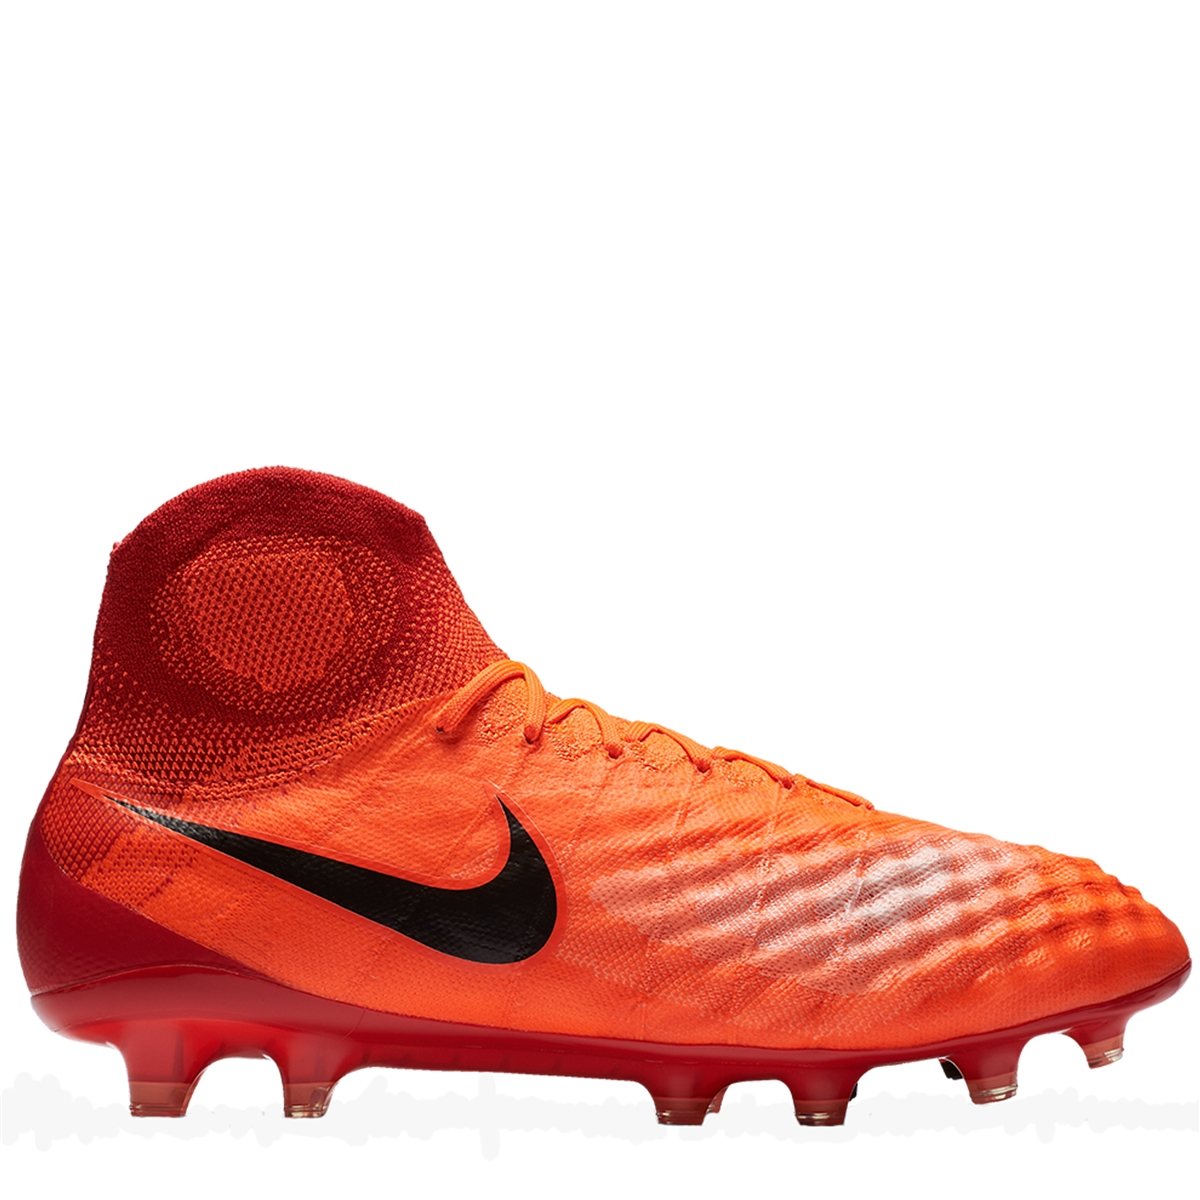 Nike Magista Obra II FG Soccer Cleats (Total Crimson Black University Red)   3b0387b313